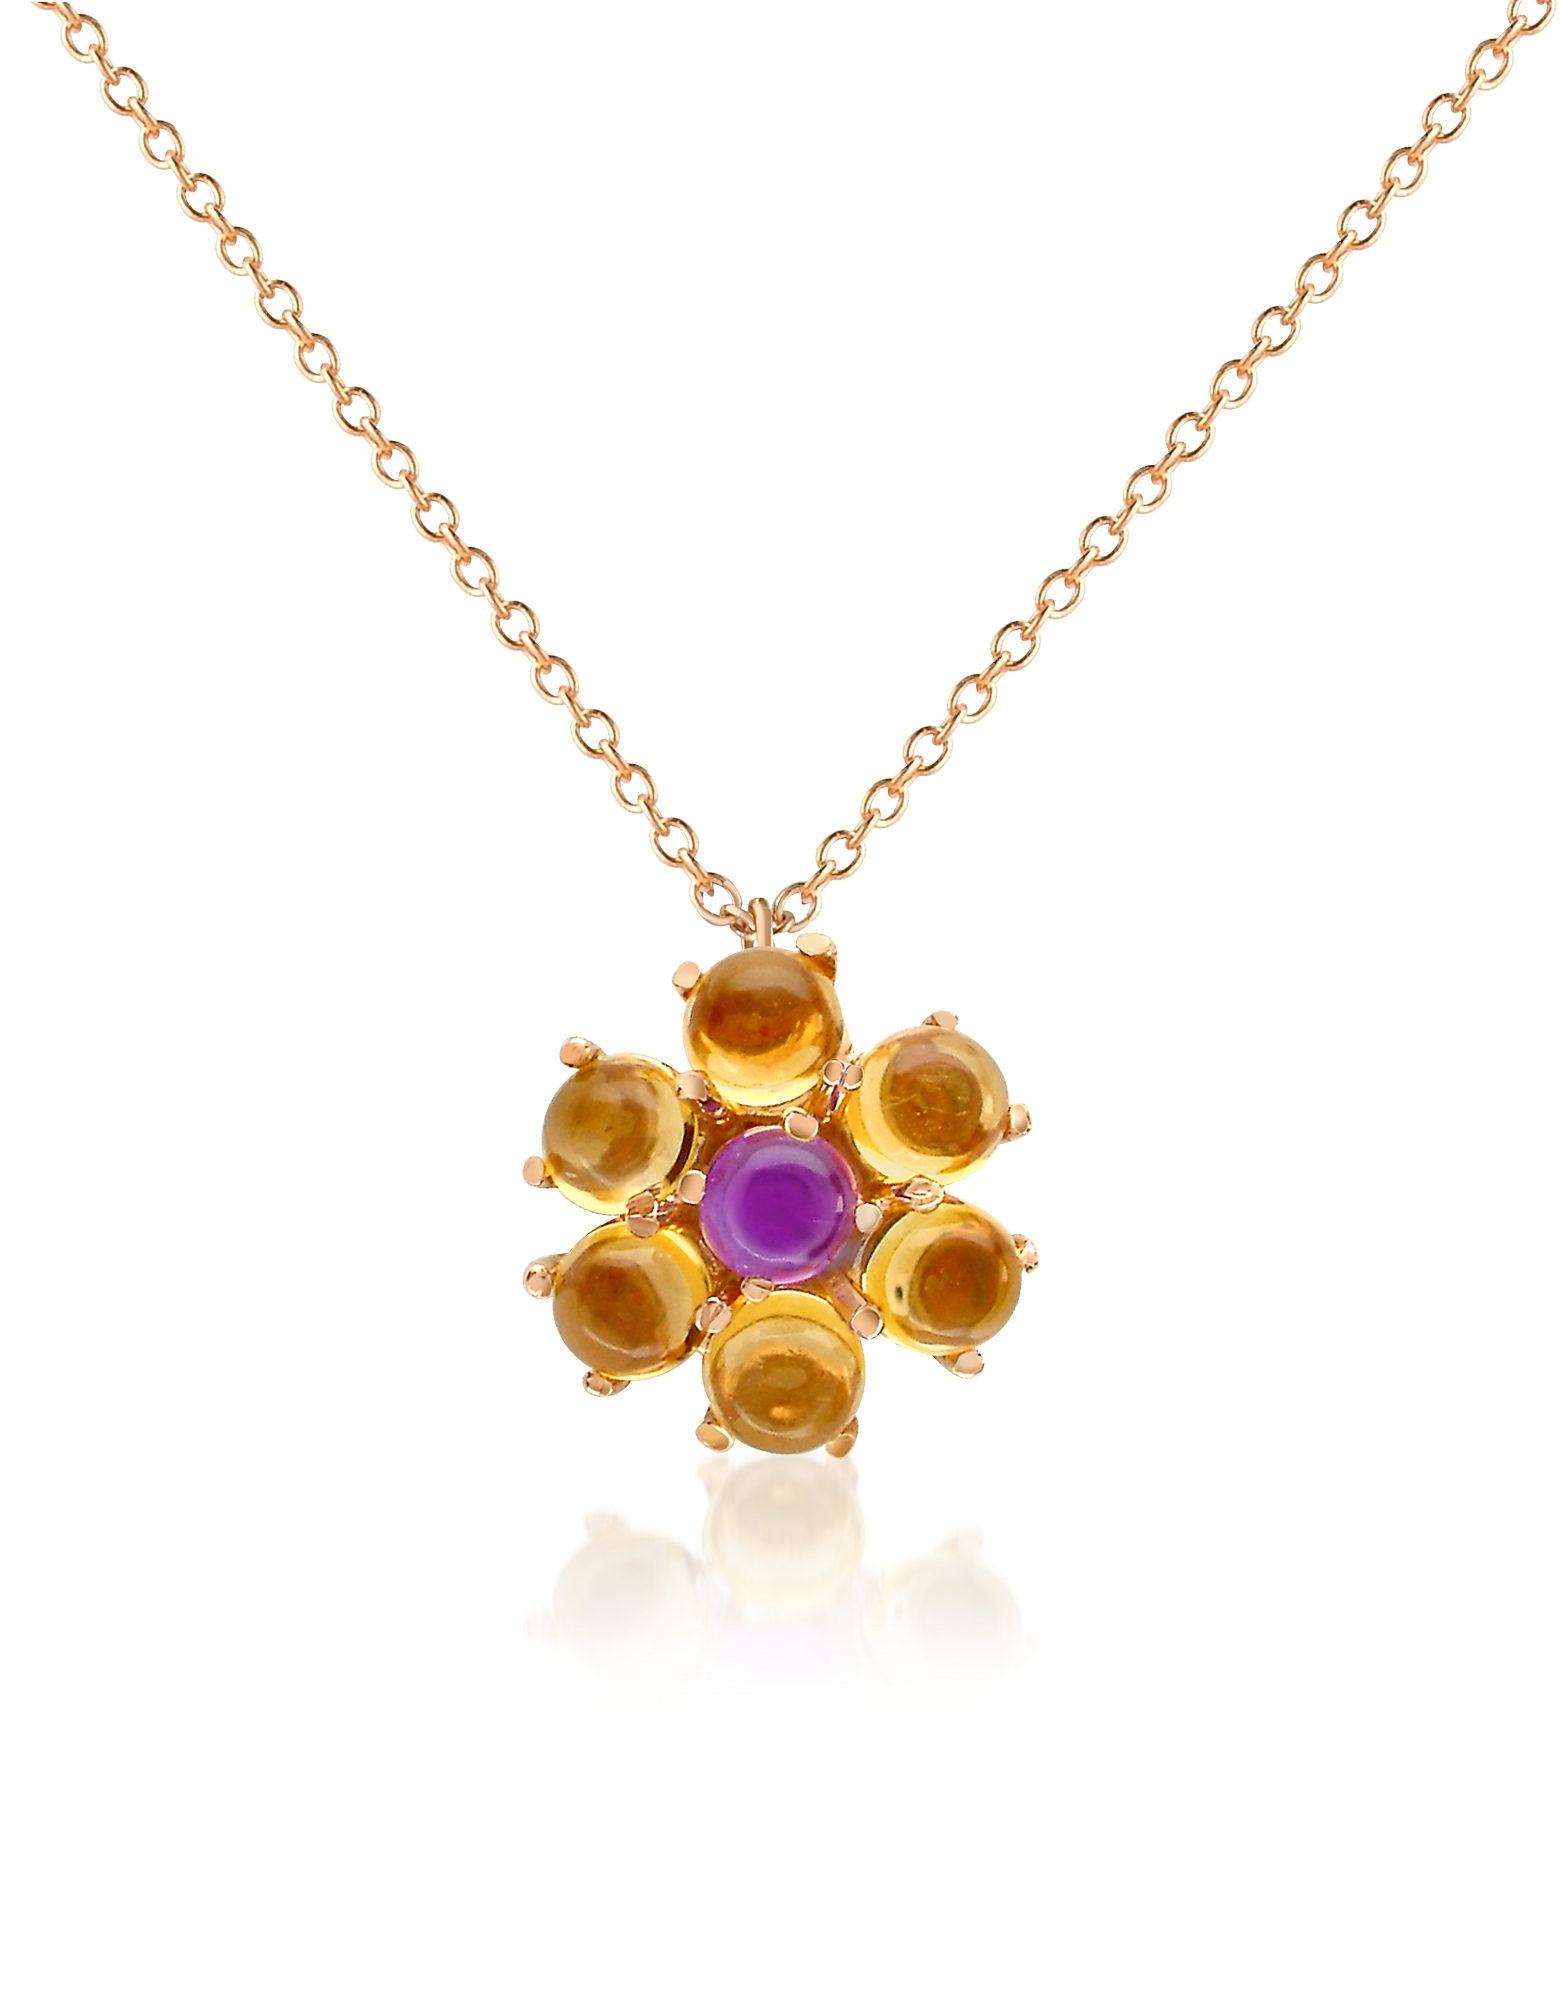 Forzieri Designer Necklaces, Amethyst and Citrine Flower 18K Gold Pendant Necklace